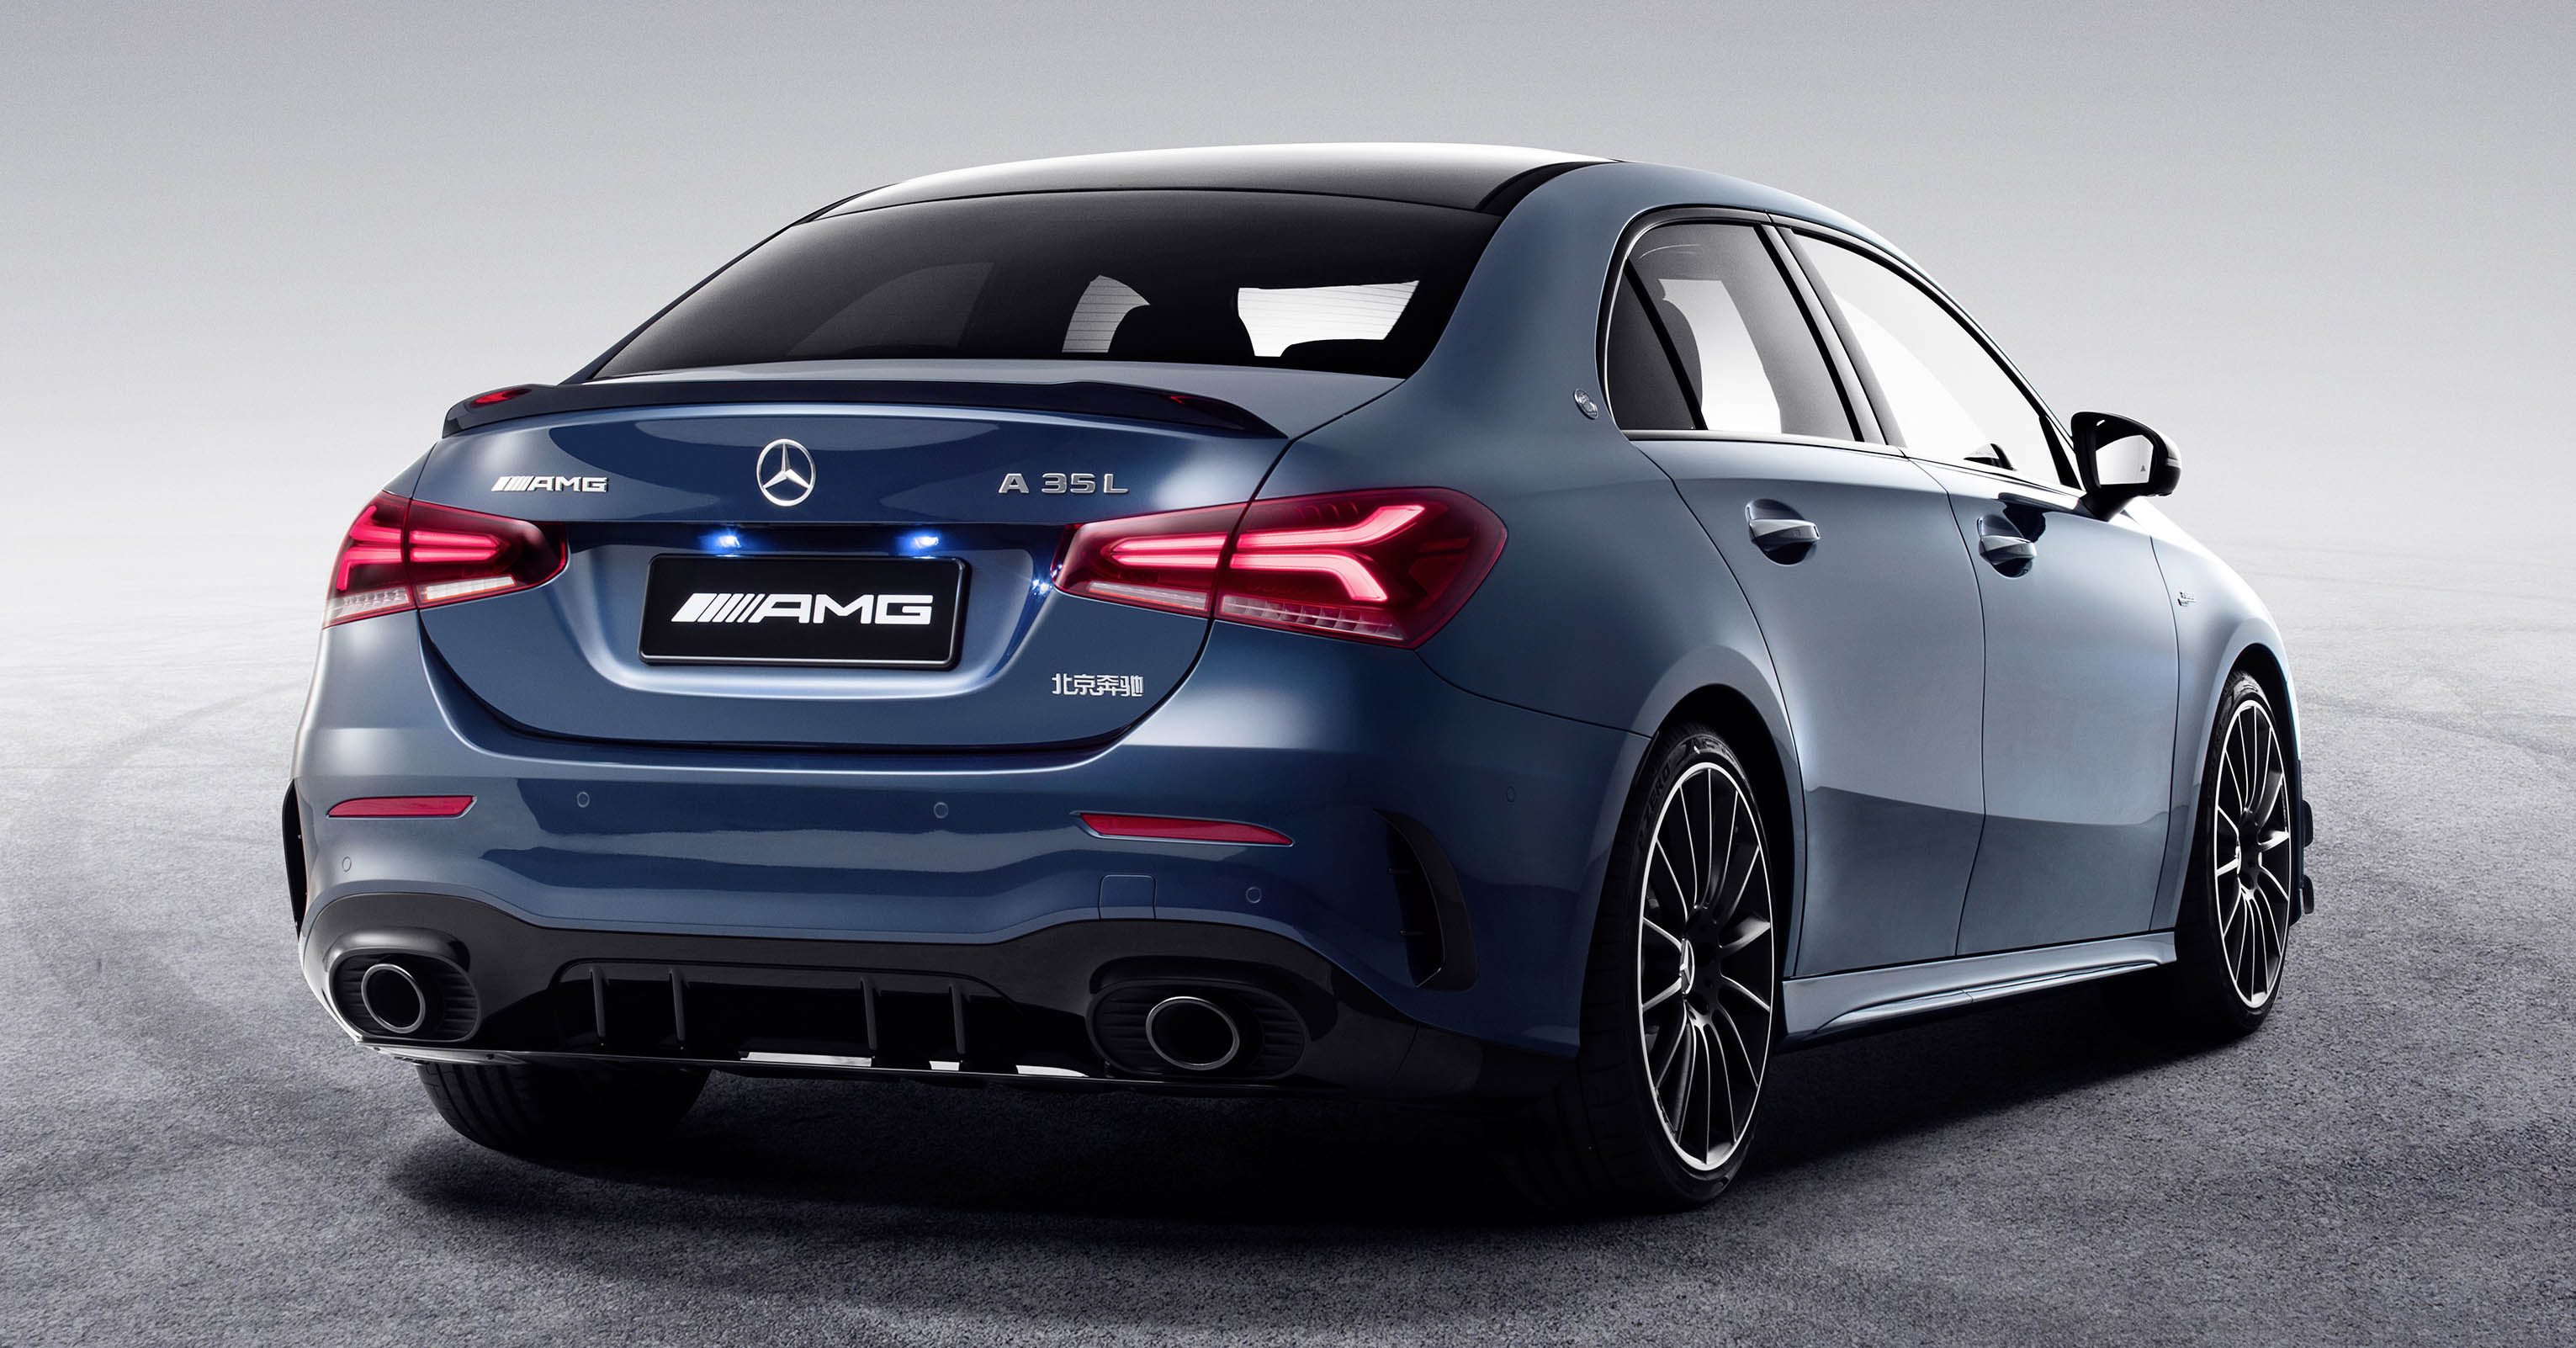 Mercedes Amg A35 L Sedan Is Called Z177 Adds 60mm In China